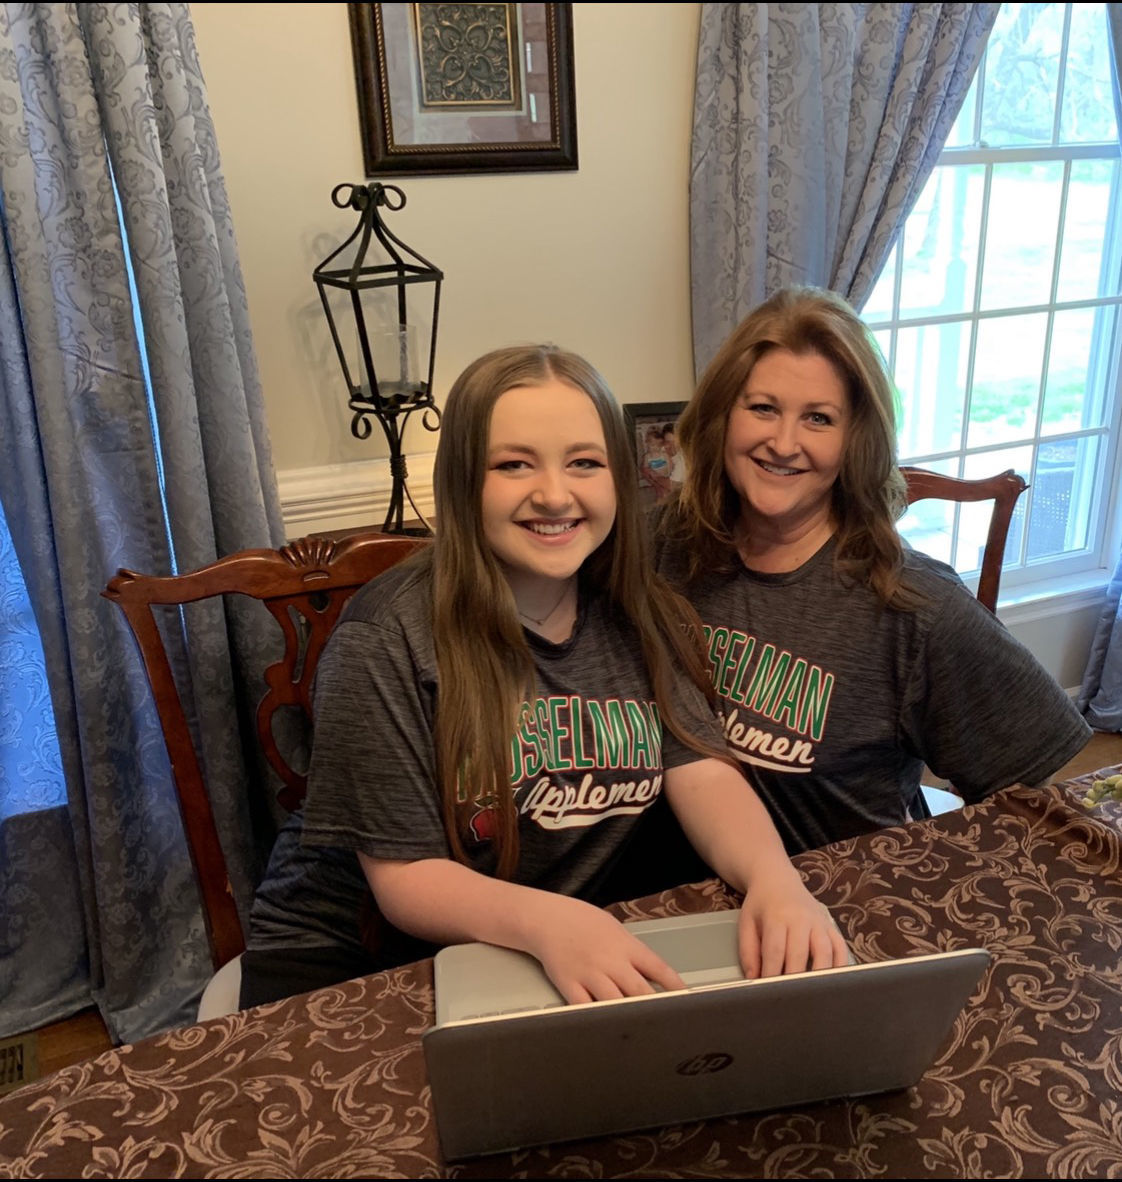 Janelle Sperry with her daughter Elizabeth took action to have Musselman High School seniors adopted after their graduation ceremony was postposed. She received about 800 responses in the first 24 hours.